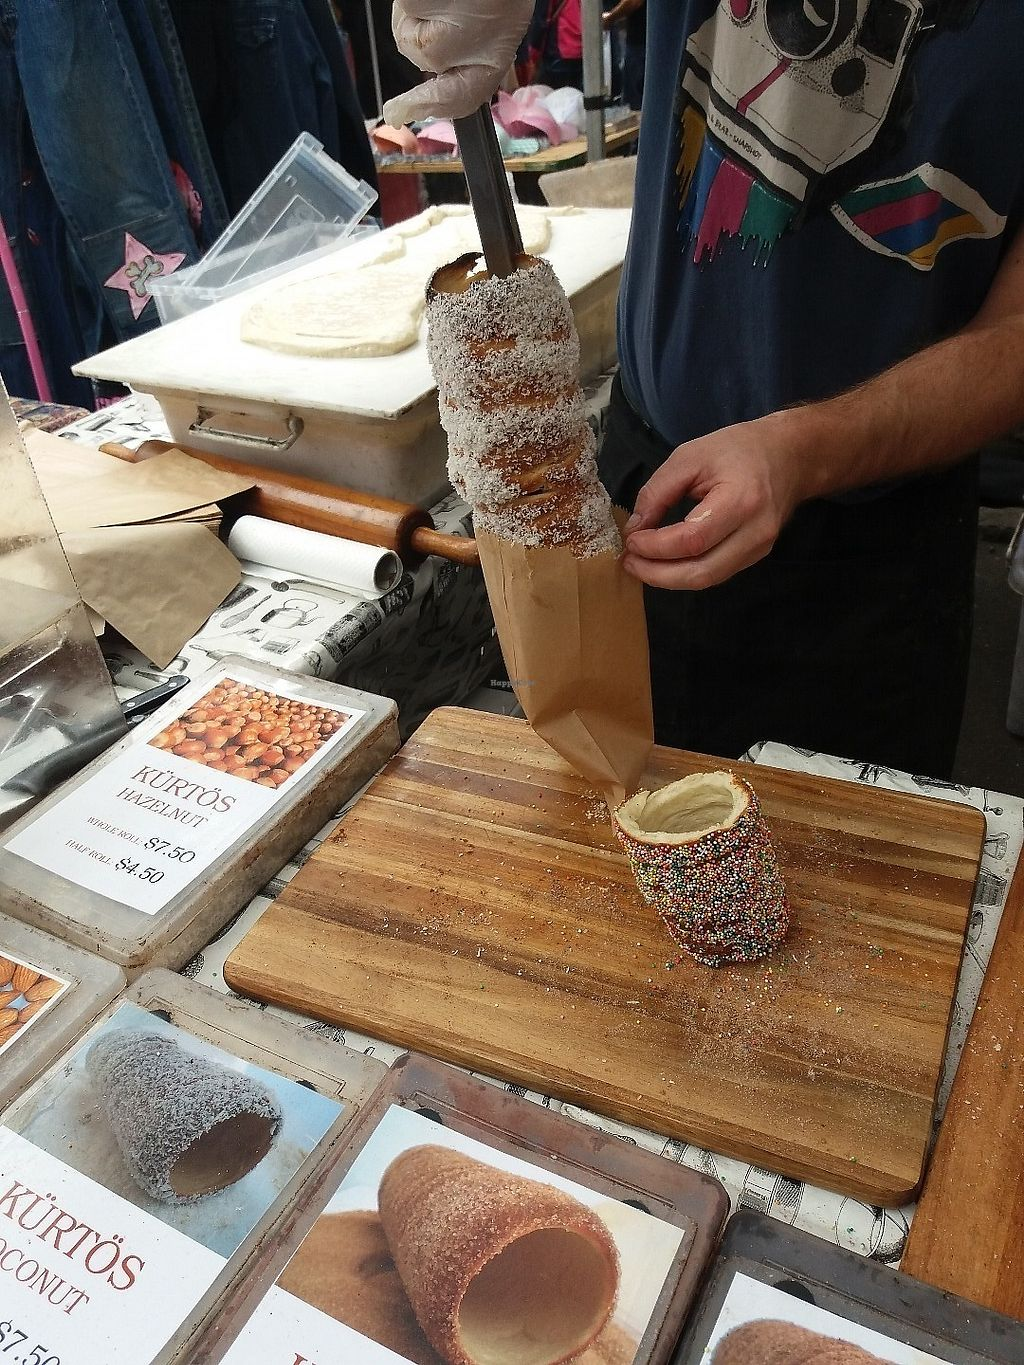 "Photo of Gabor's Kurtos - Market Stall  by <a href=""/members/profile/veganvirtues"">veganvirtues</a> <br/>Ready to serve my coconut kurtos <br/> June 17, 2017  - <a href='/contact/abuse/image/93807/269977'>Report</a>"